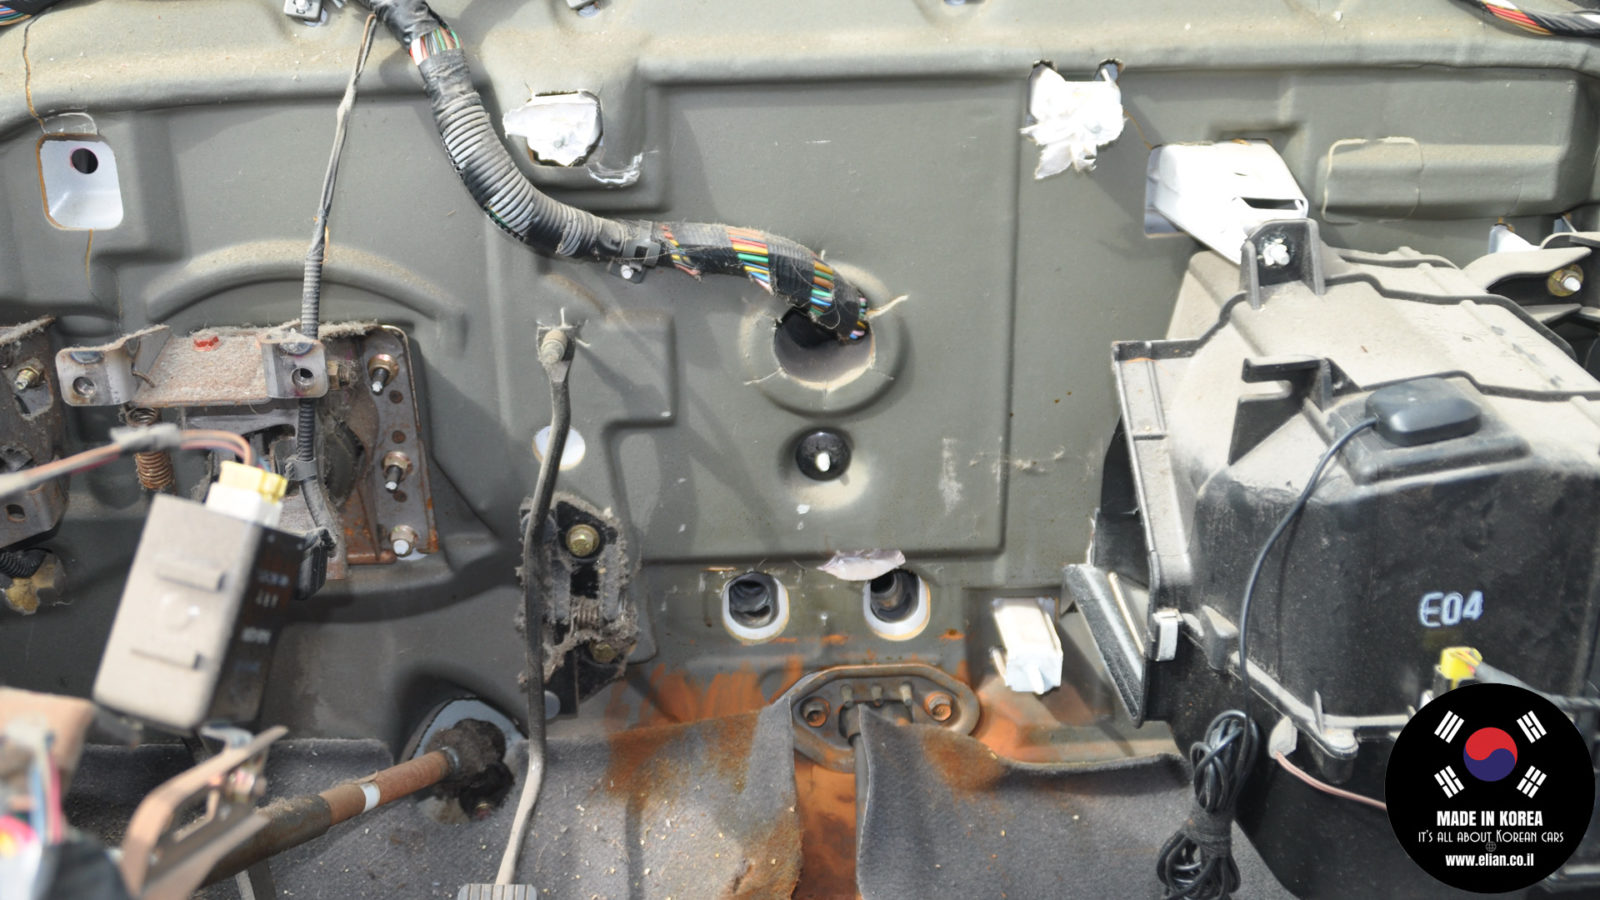 (Hyundai Getz) 972001C000 Heater unit